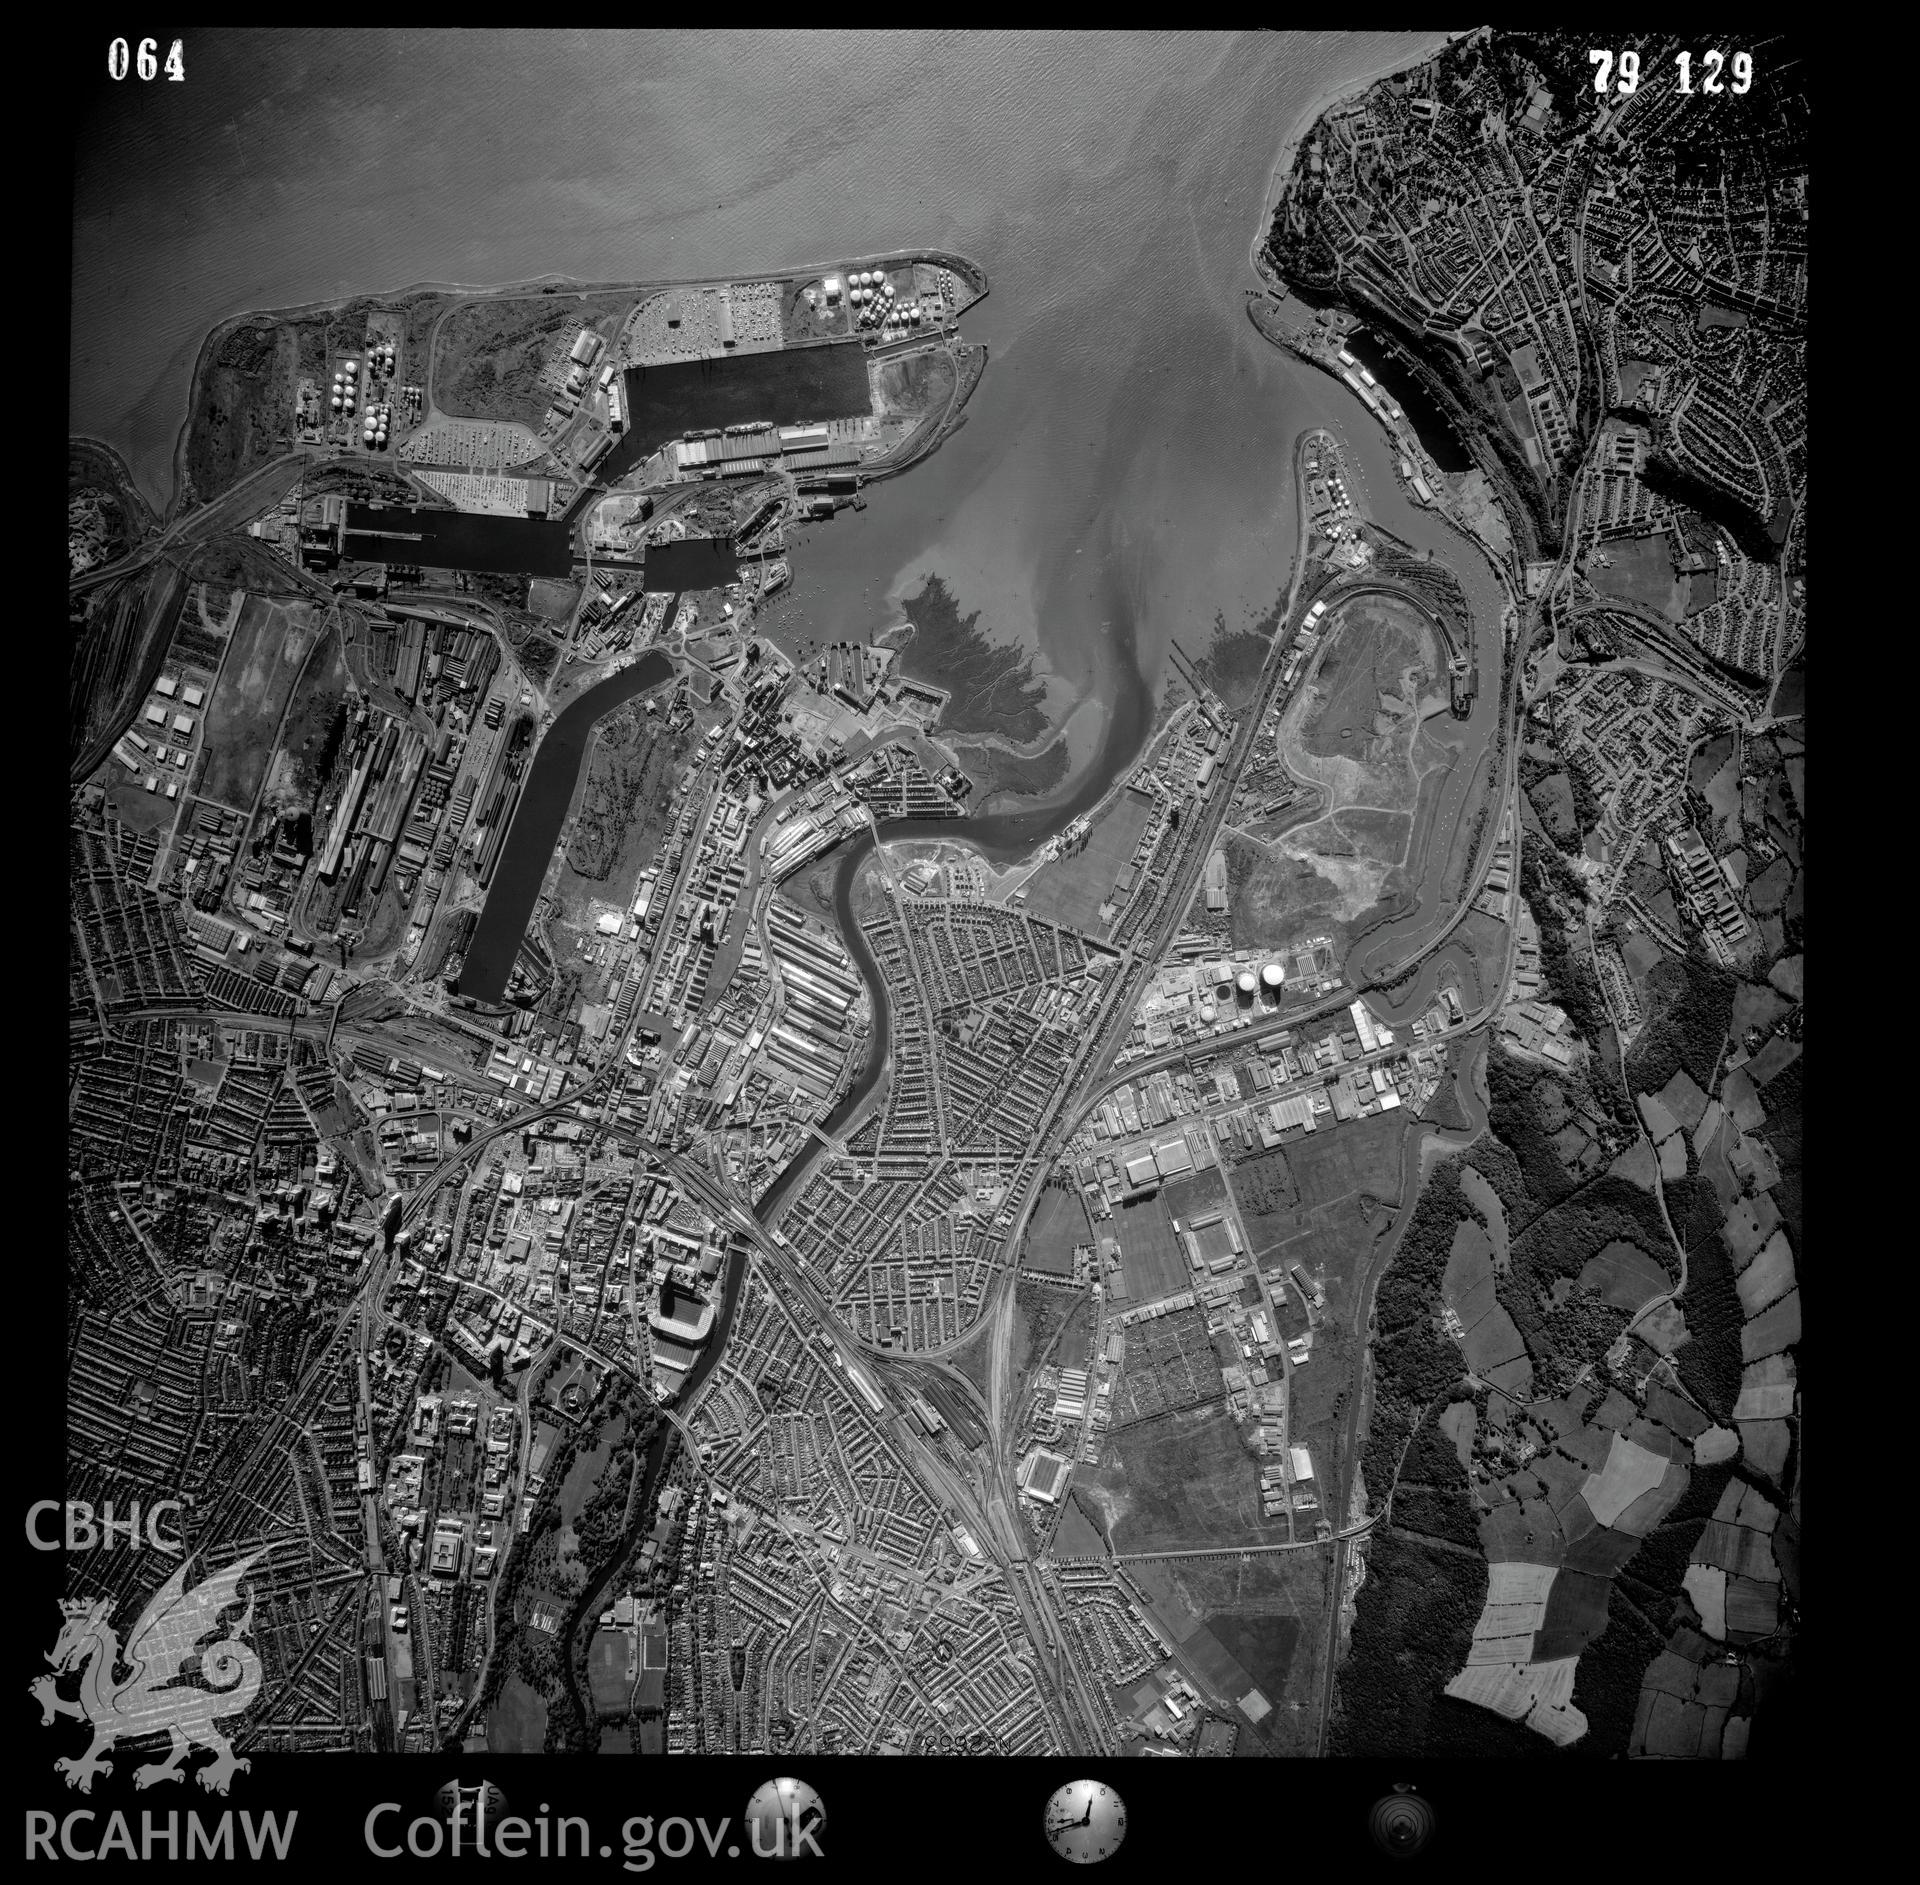 Digital copy of an aerial photograph showing the Cardiff Bay area, taken by Ordnance Survey, 1979.